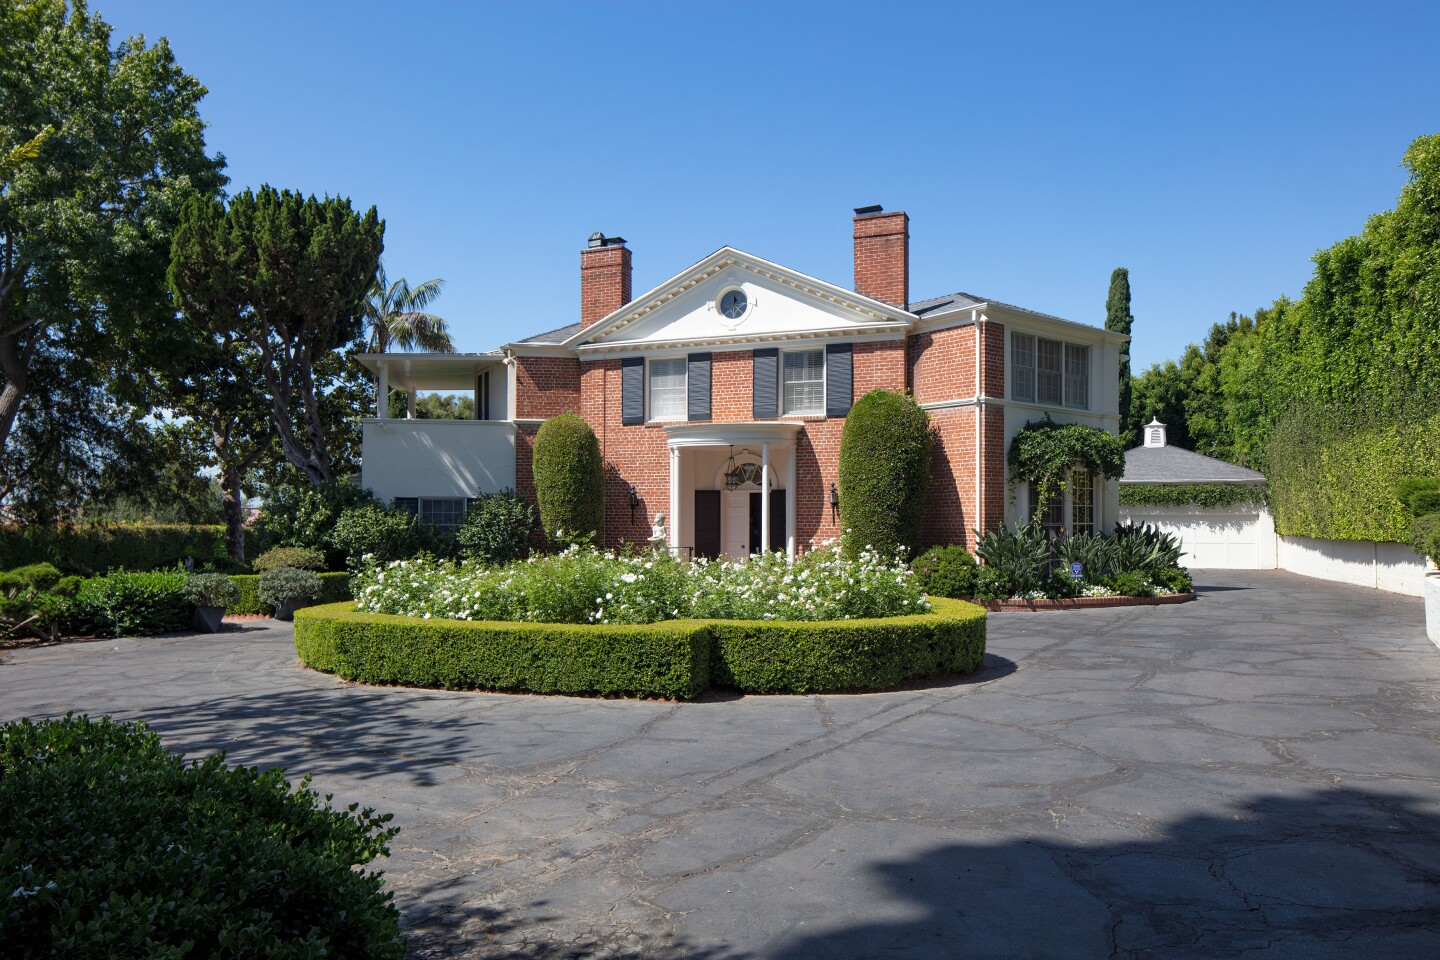 Tyrone Powers' onetime Brentwood home